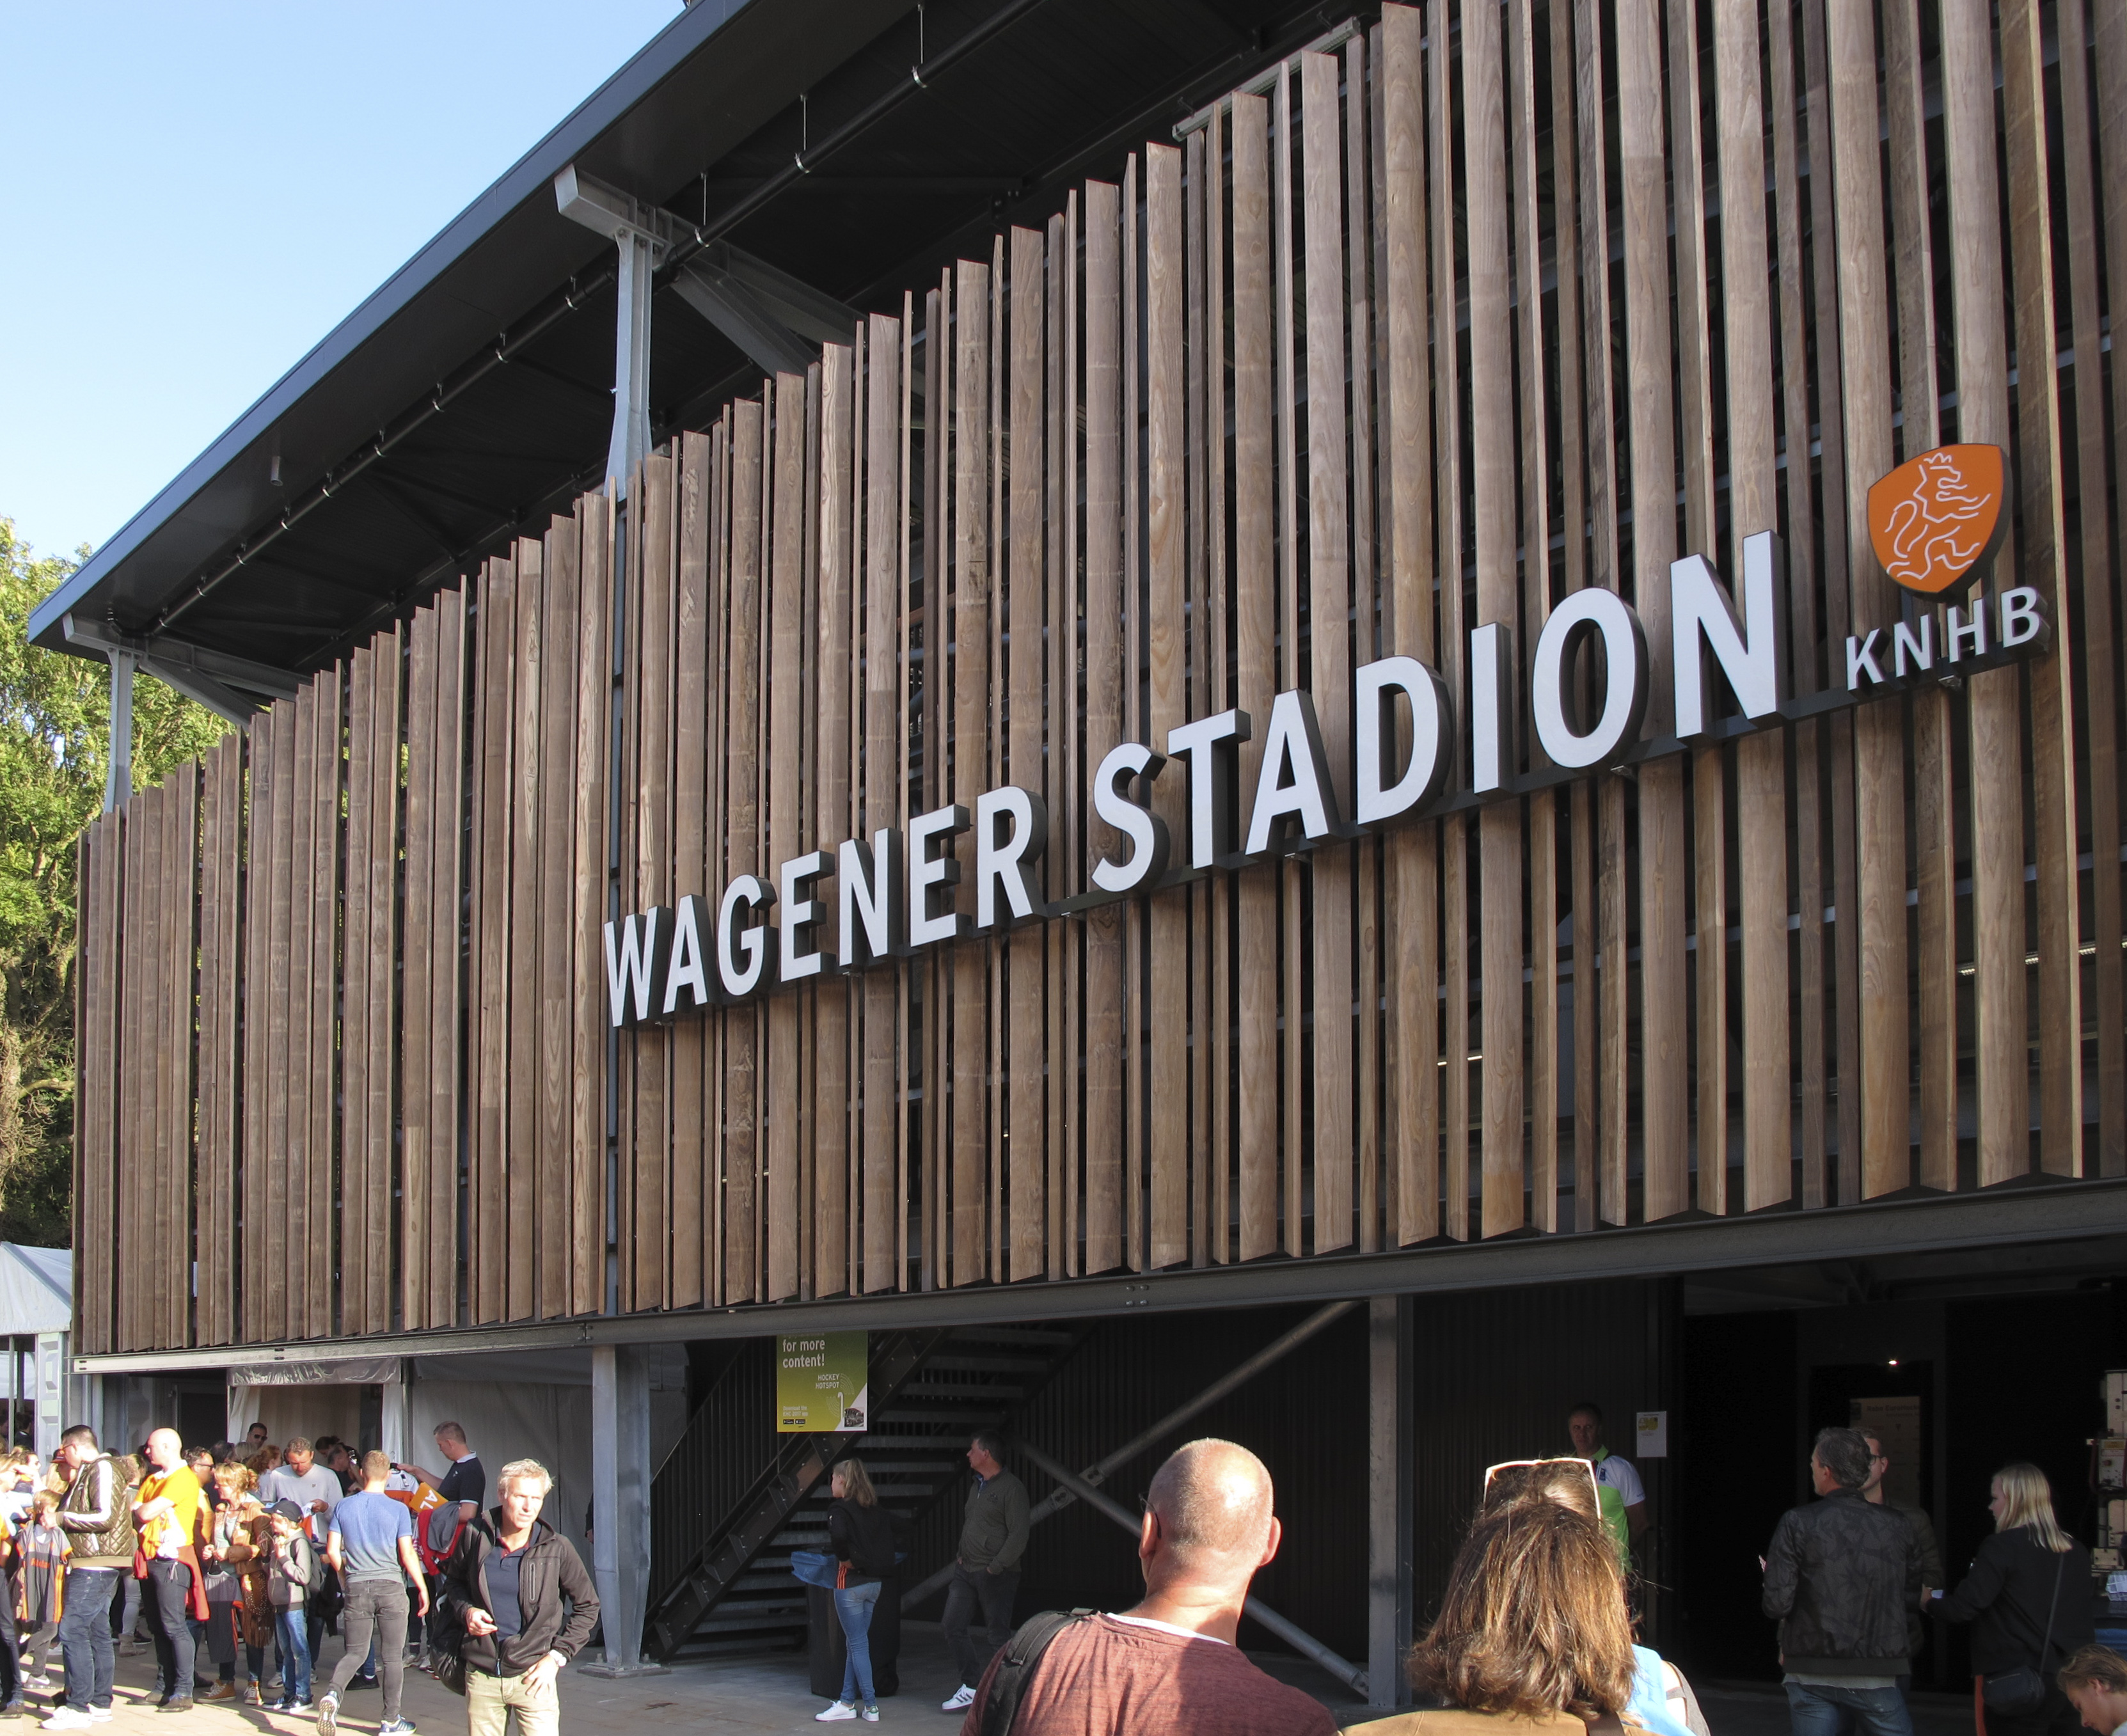 Project Wagener stadion